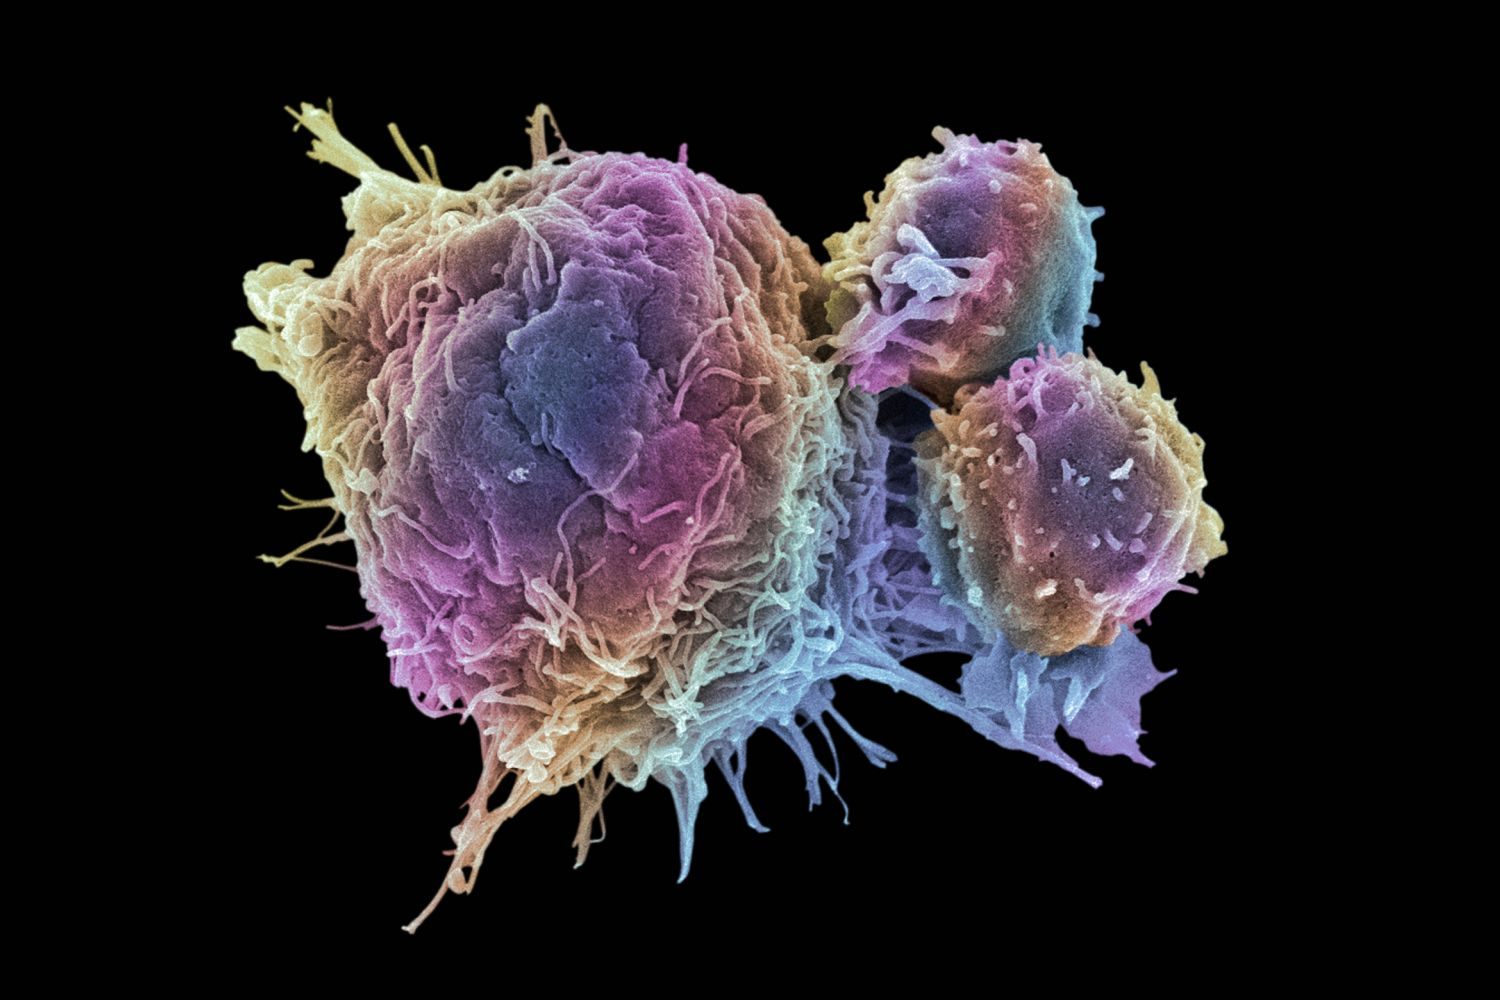 Cancer Cells vs  Normal Cells: How Are They Different?